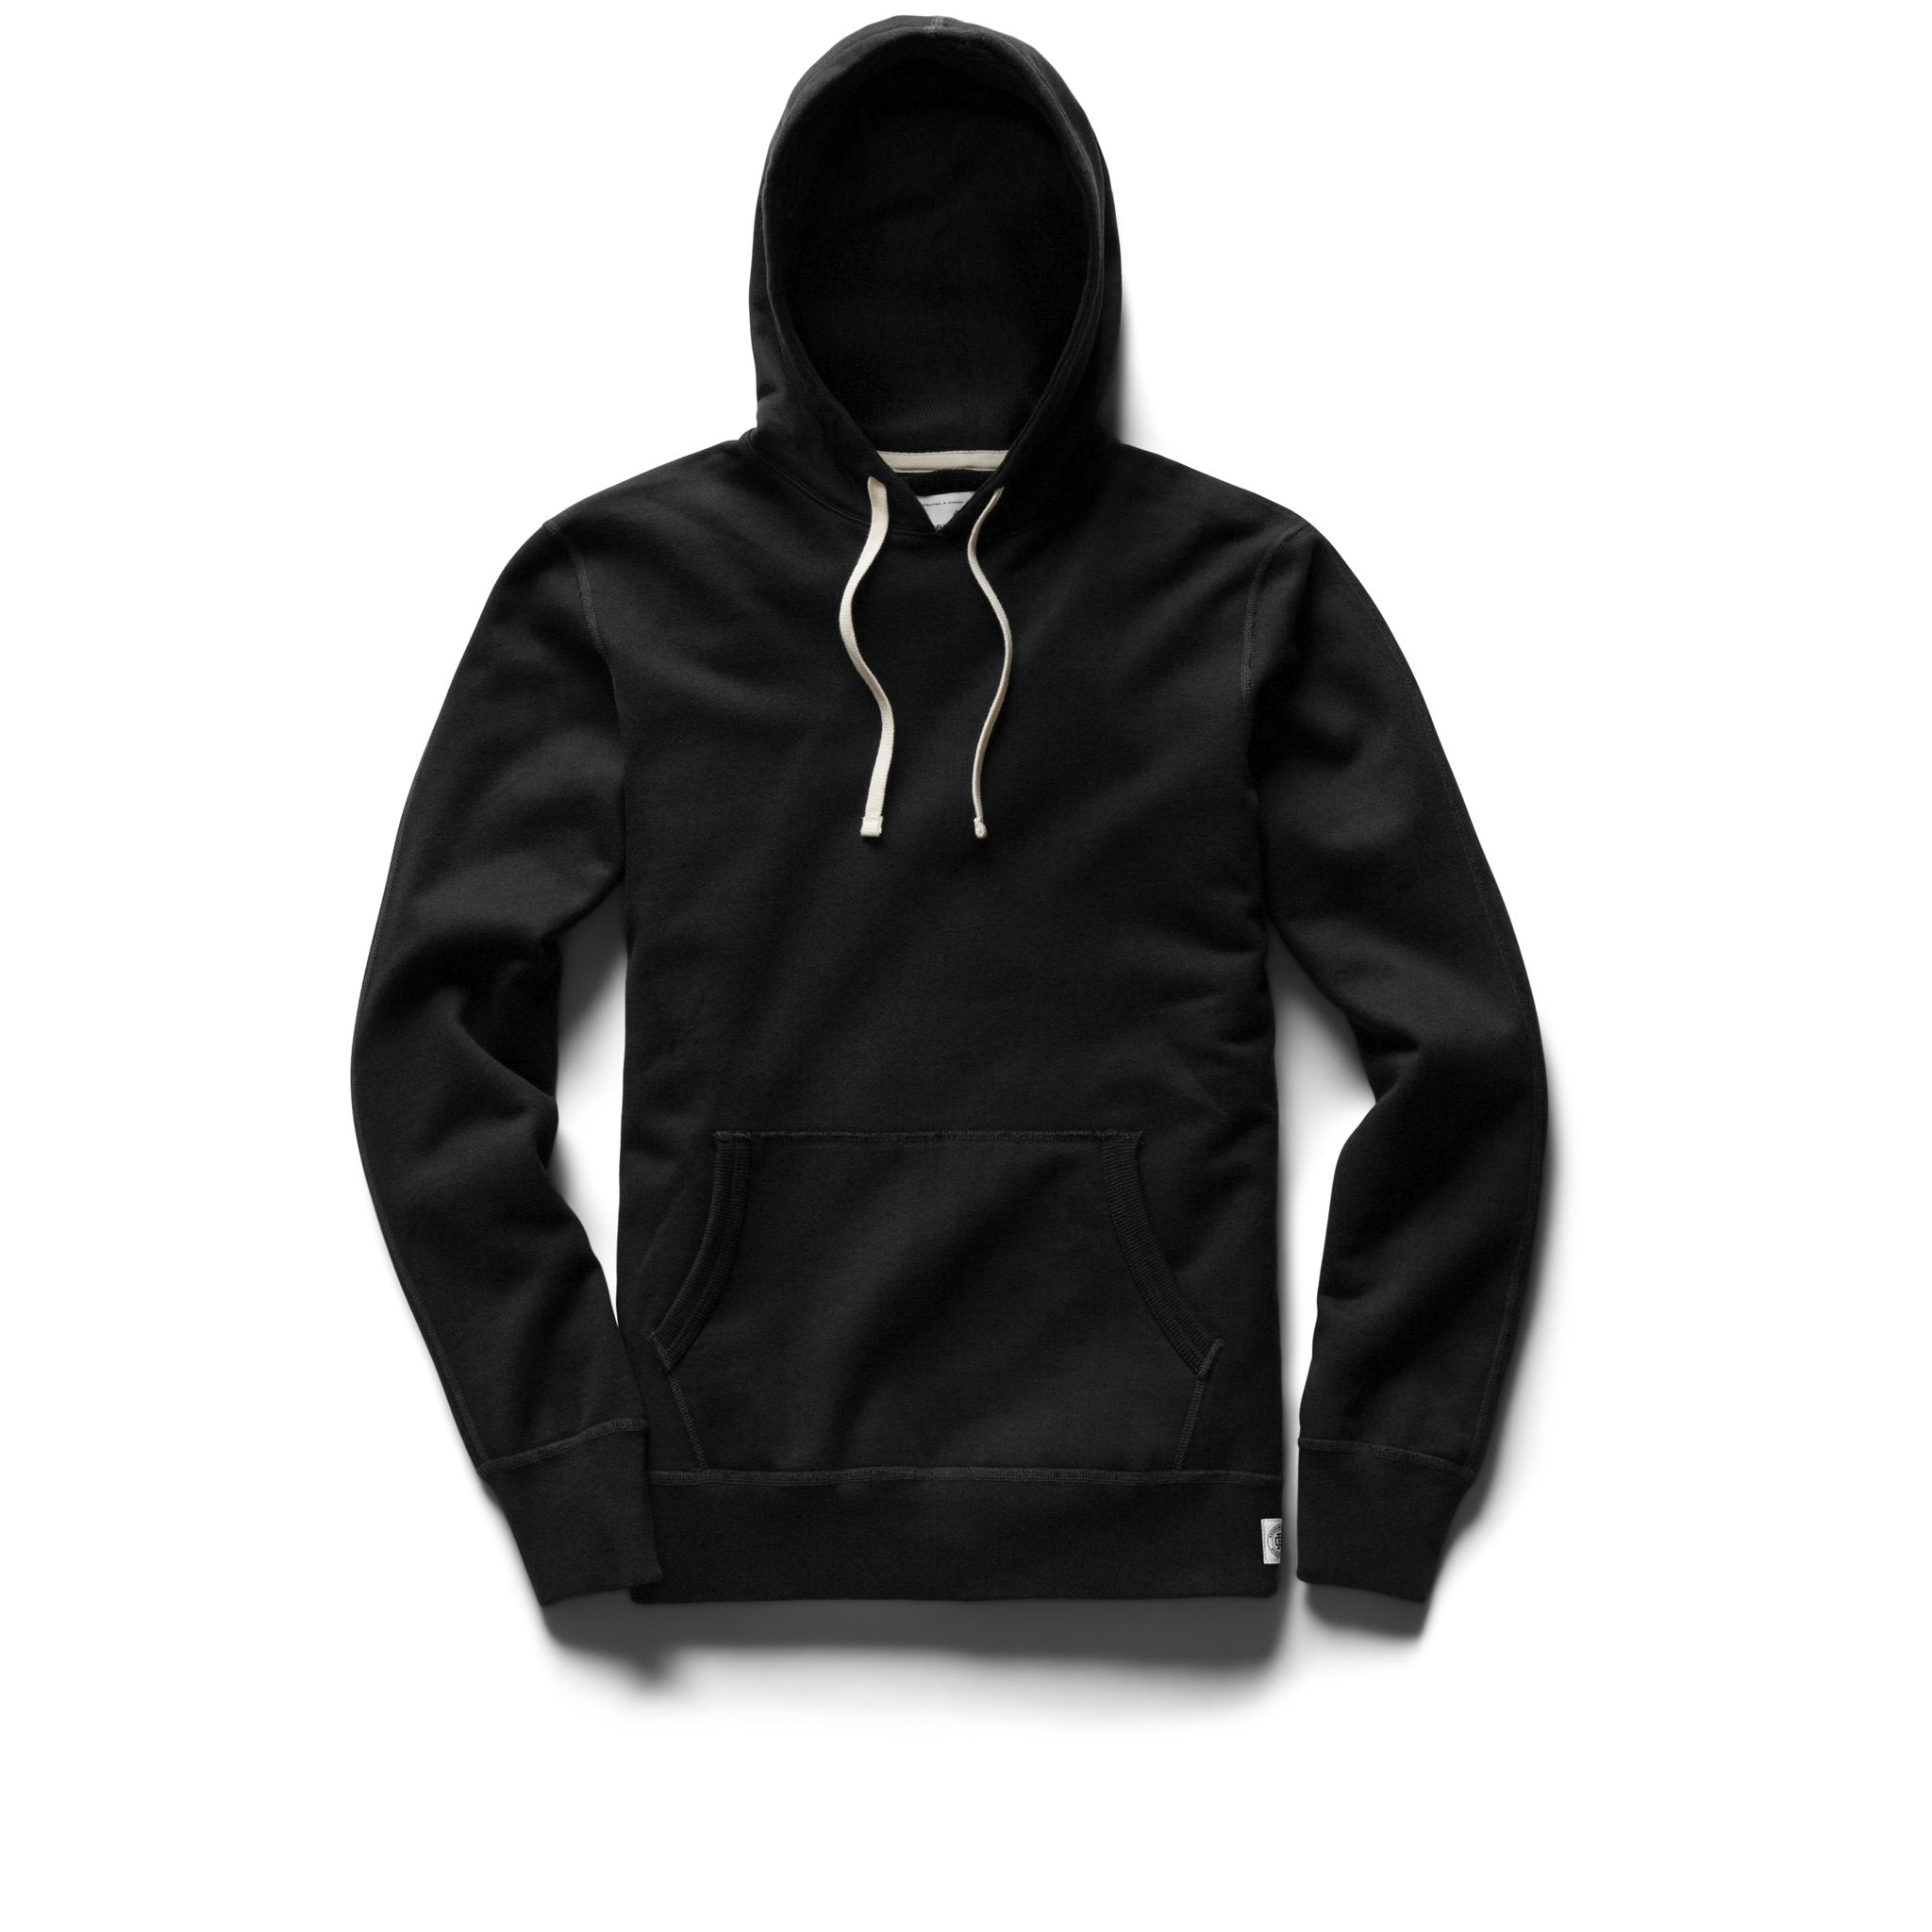 REIGNING CHAMP M'S HOODIES BLACK S PULLOVER HOODIE - MIDWEIGHT TERRY